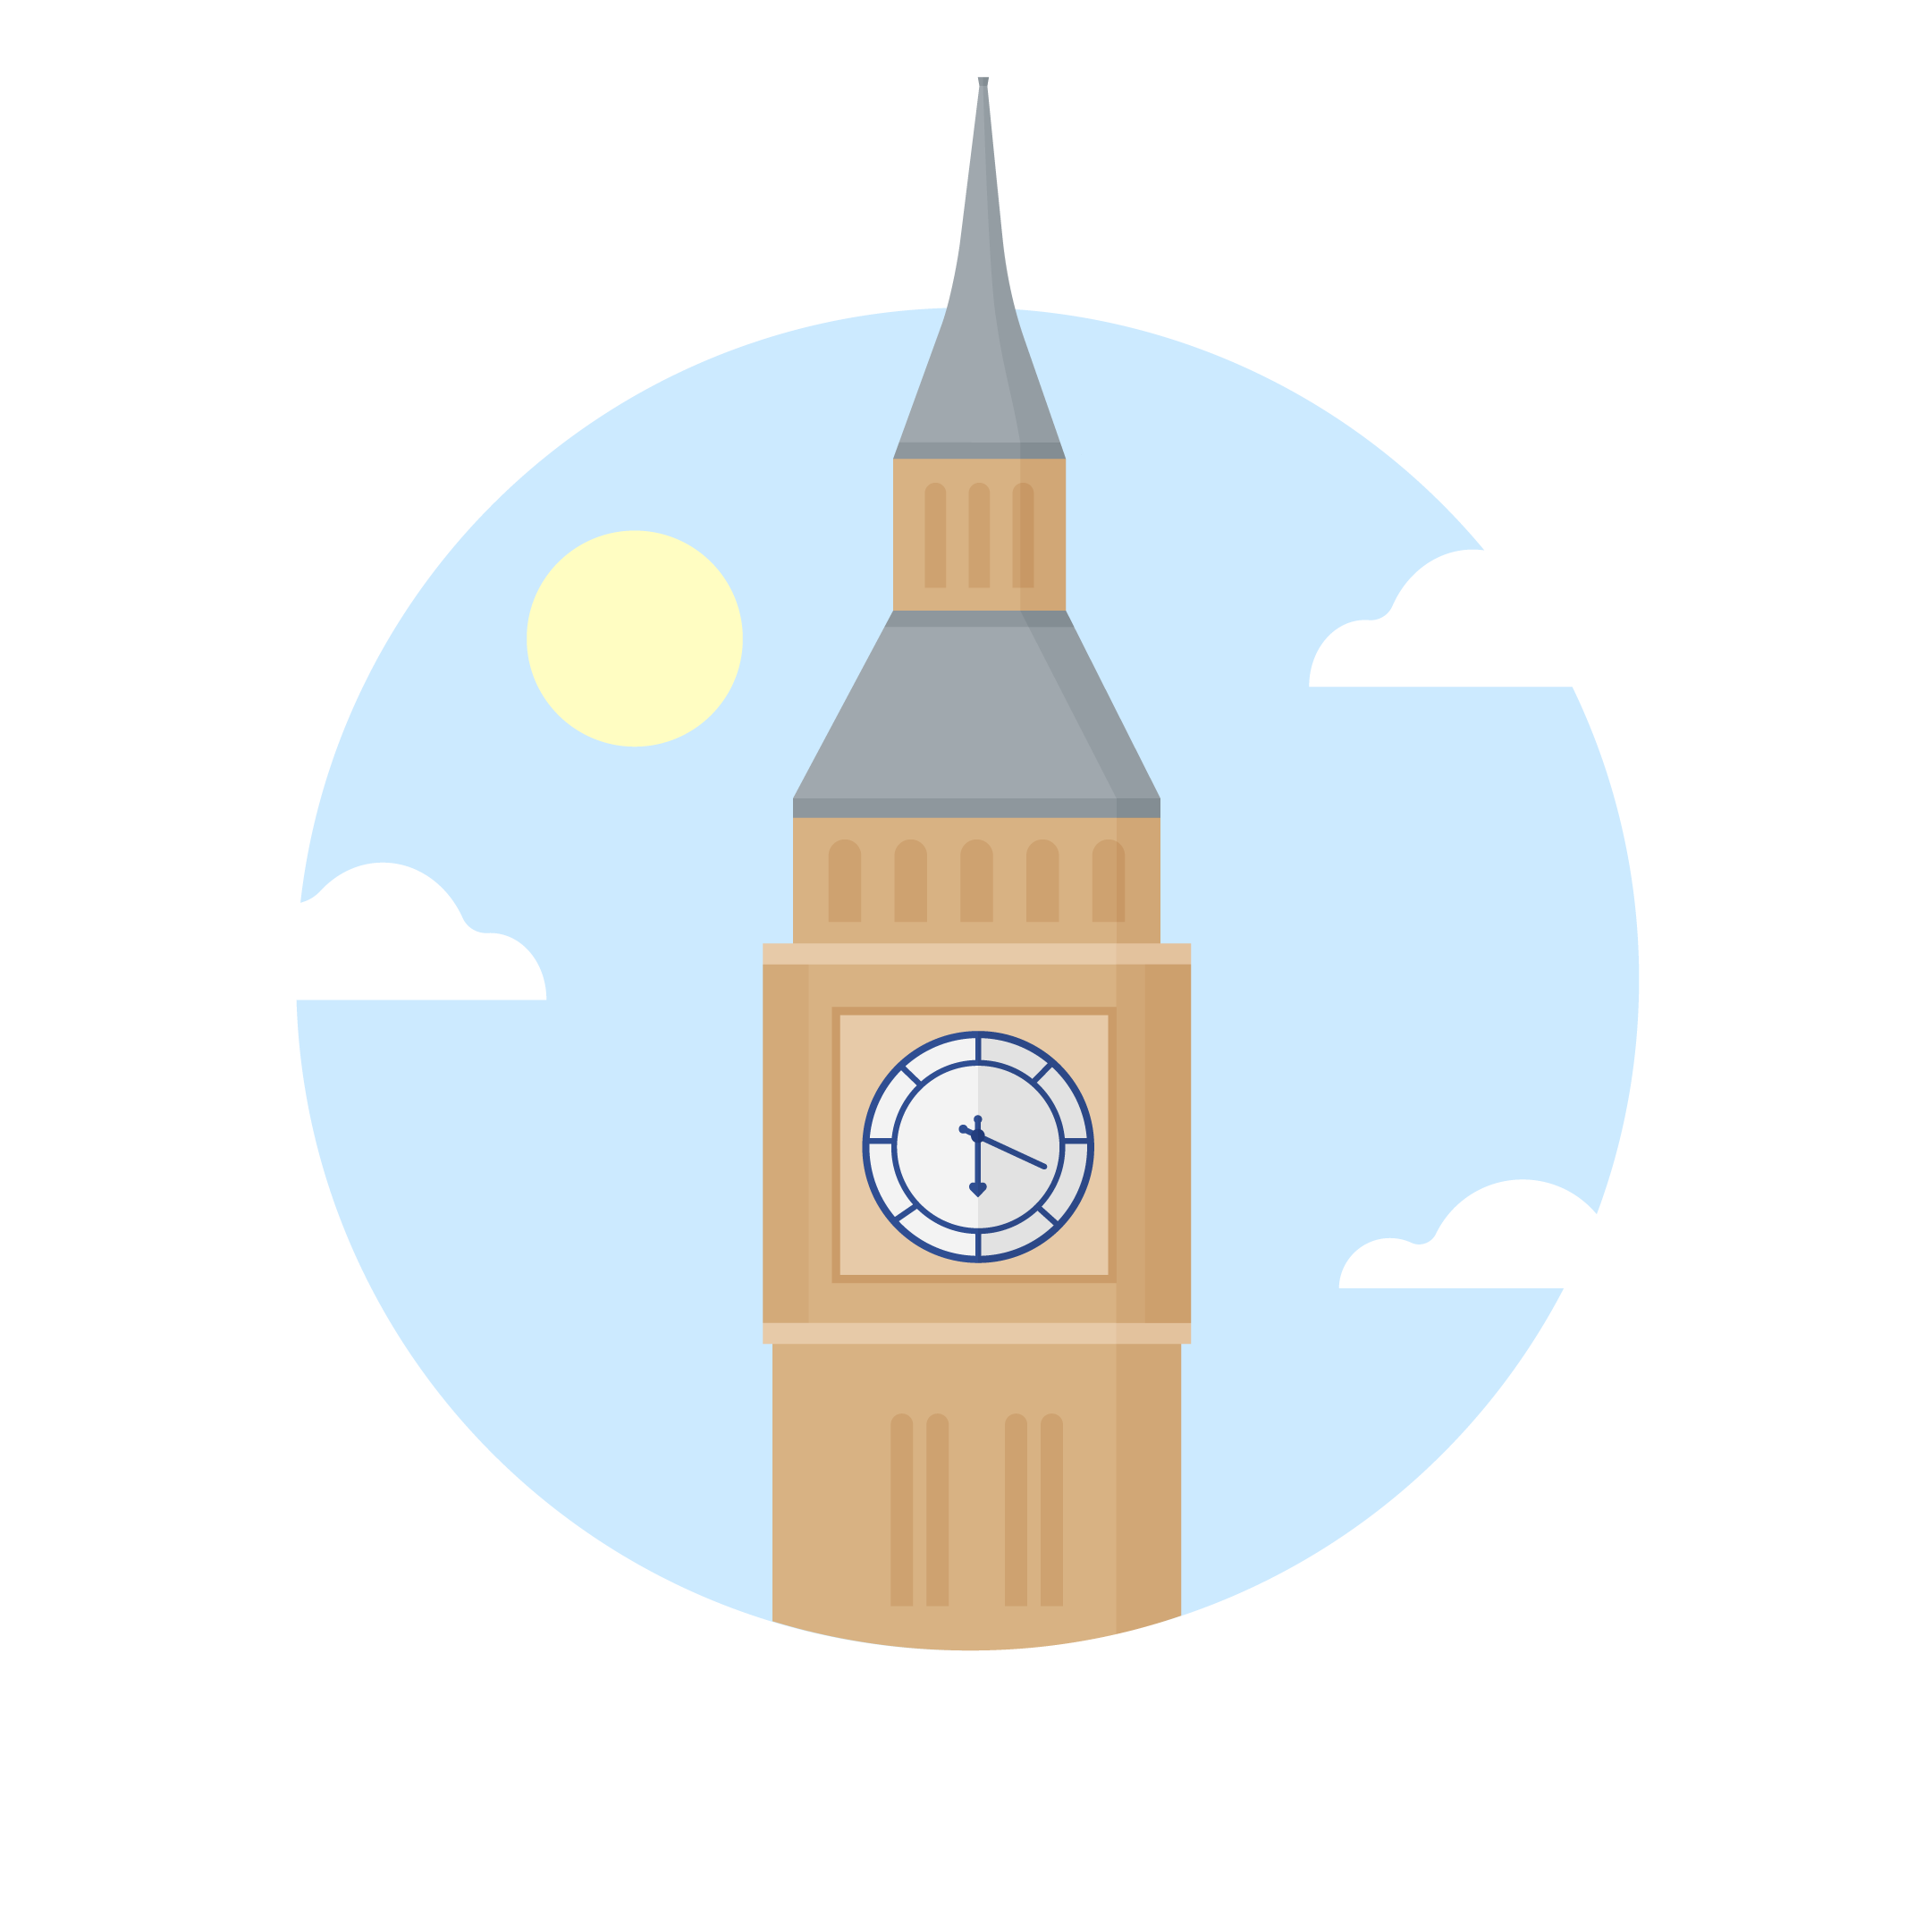 Flat illustration of the Big Ben (Elizabeth Tower), London in a blue circle with clouds & sun